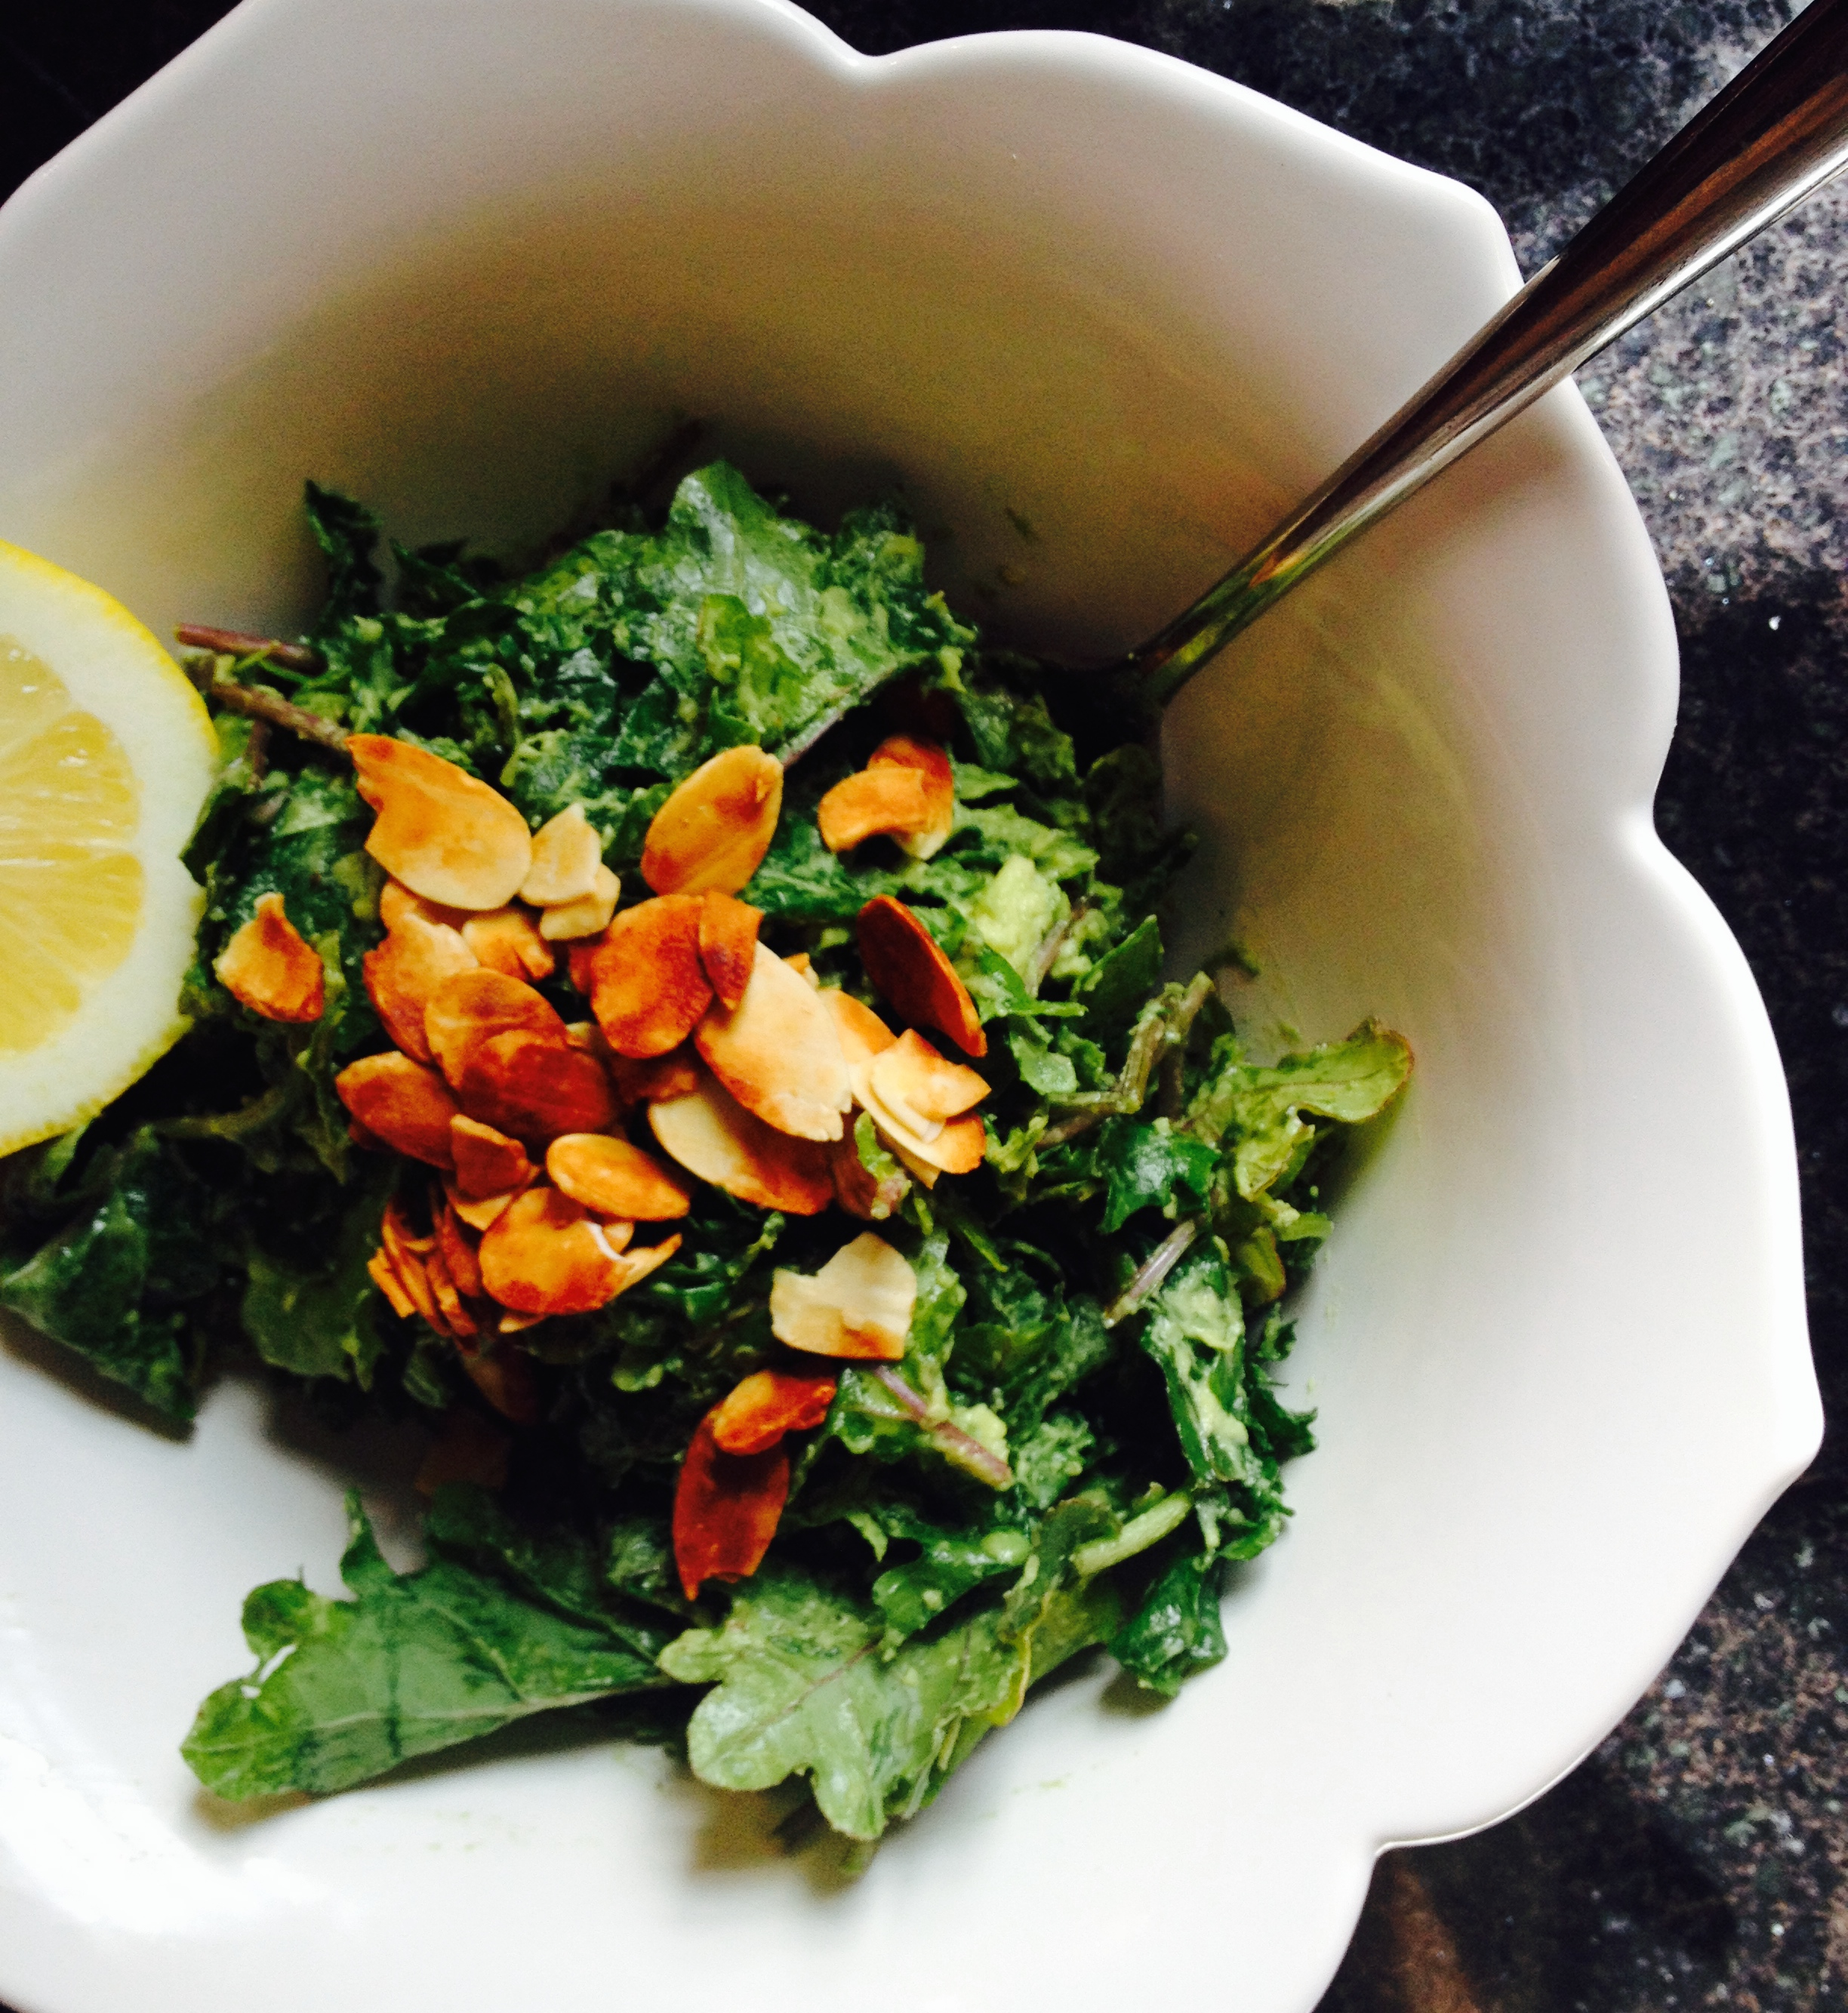 addictive avocado and lemon kale salad :: by radish*rose